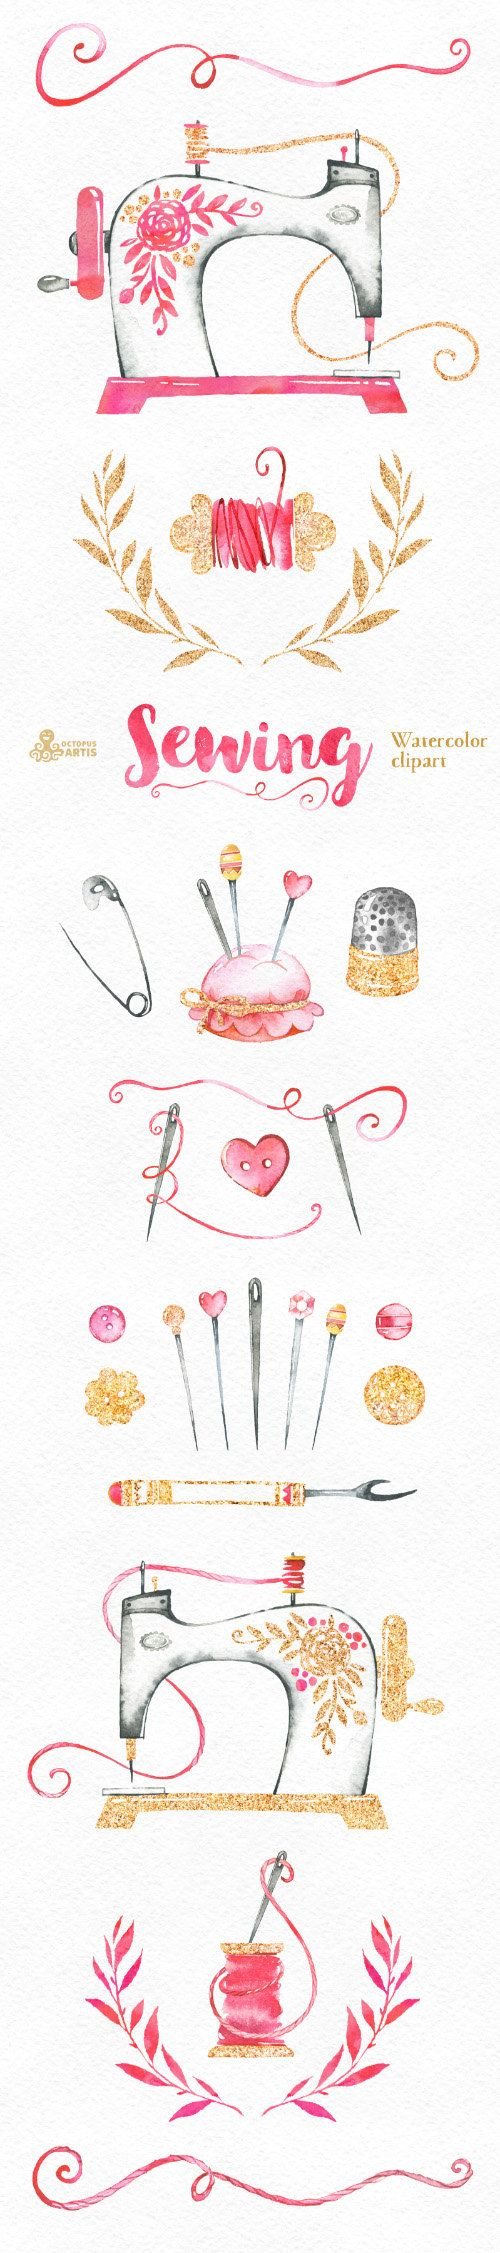 Sewing. Branding Kit and Clipart, watercolor, gold, diy, logo, needle, identity, stickers, invite, stitching, needlework, knit